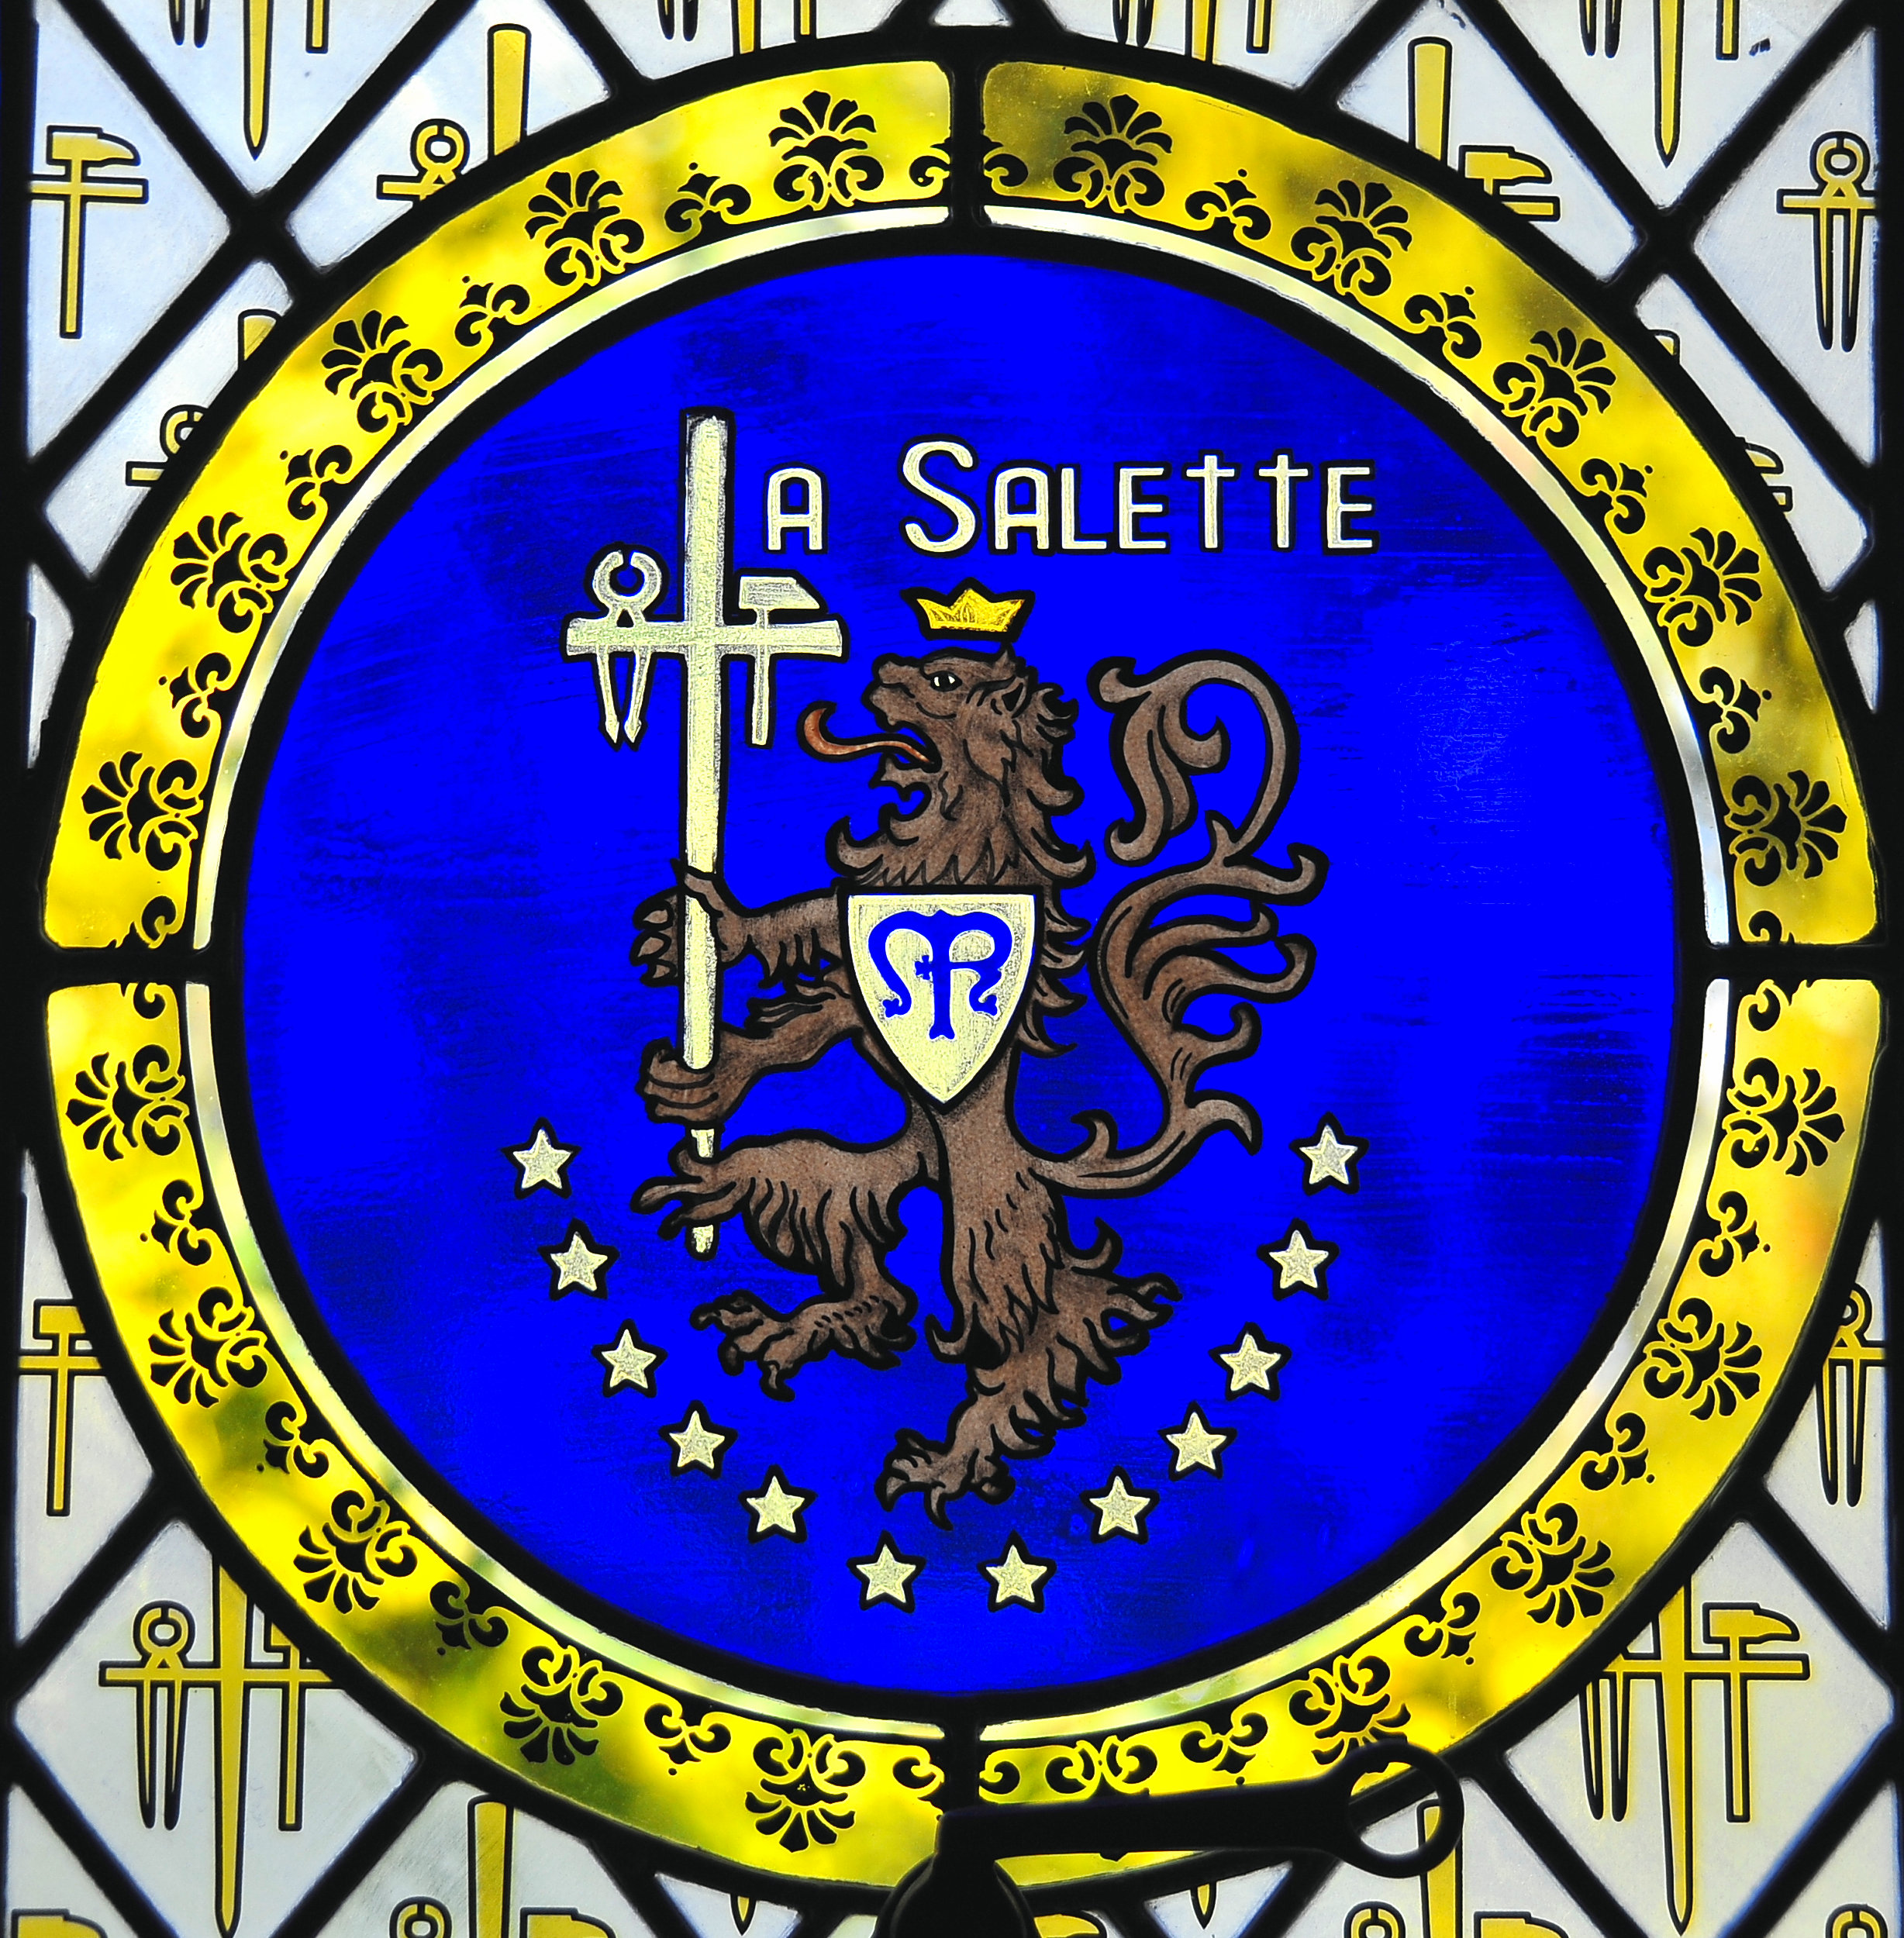 Detail of Coat of Arms